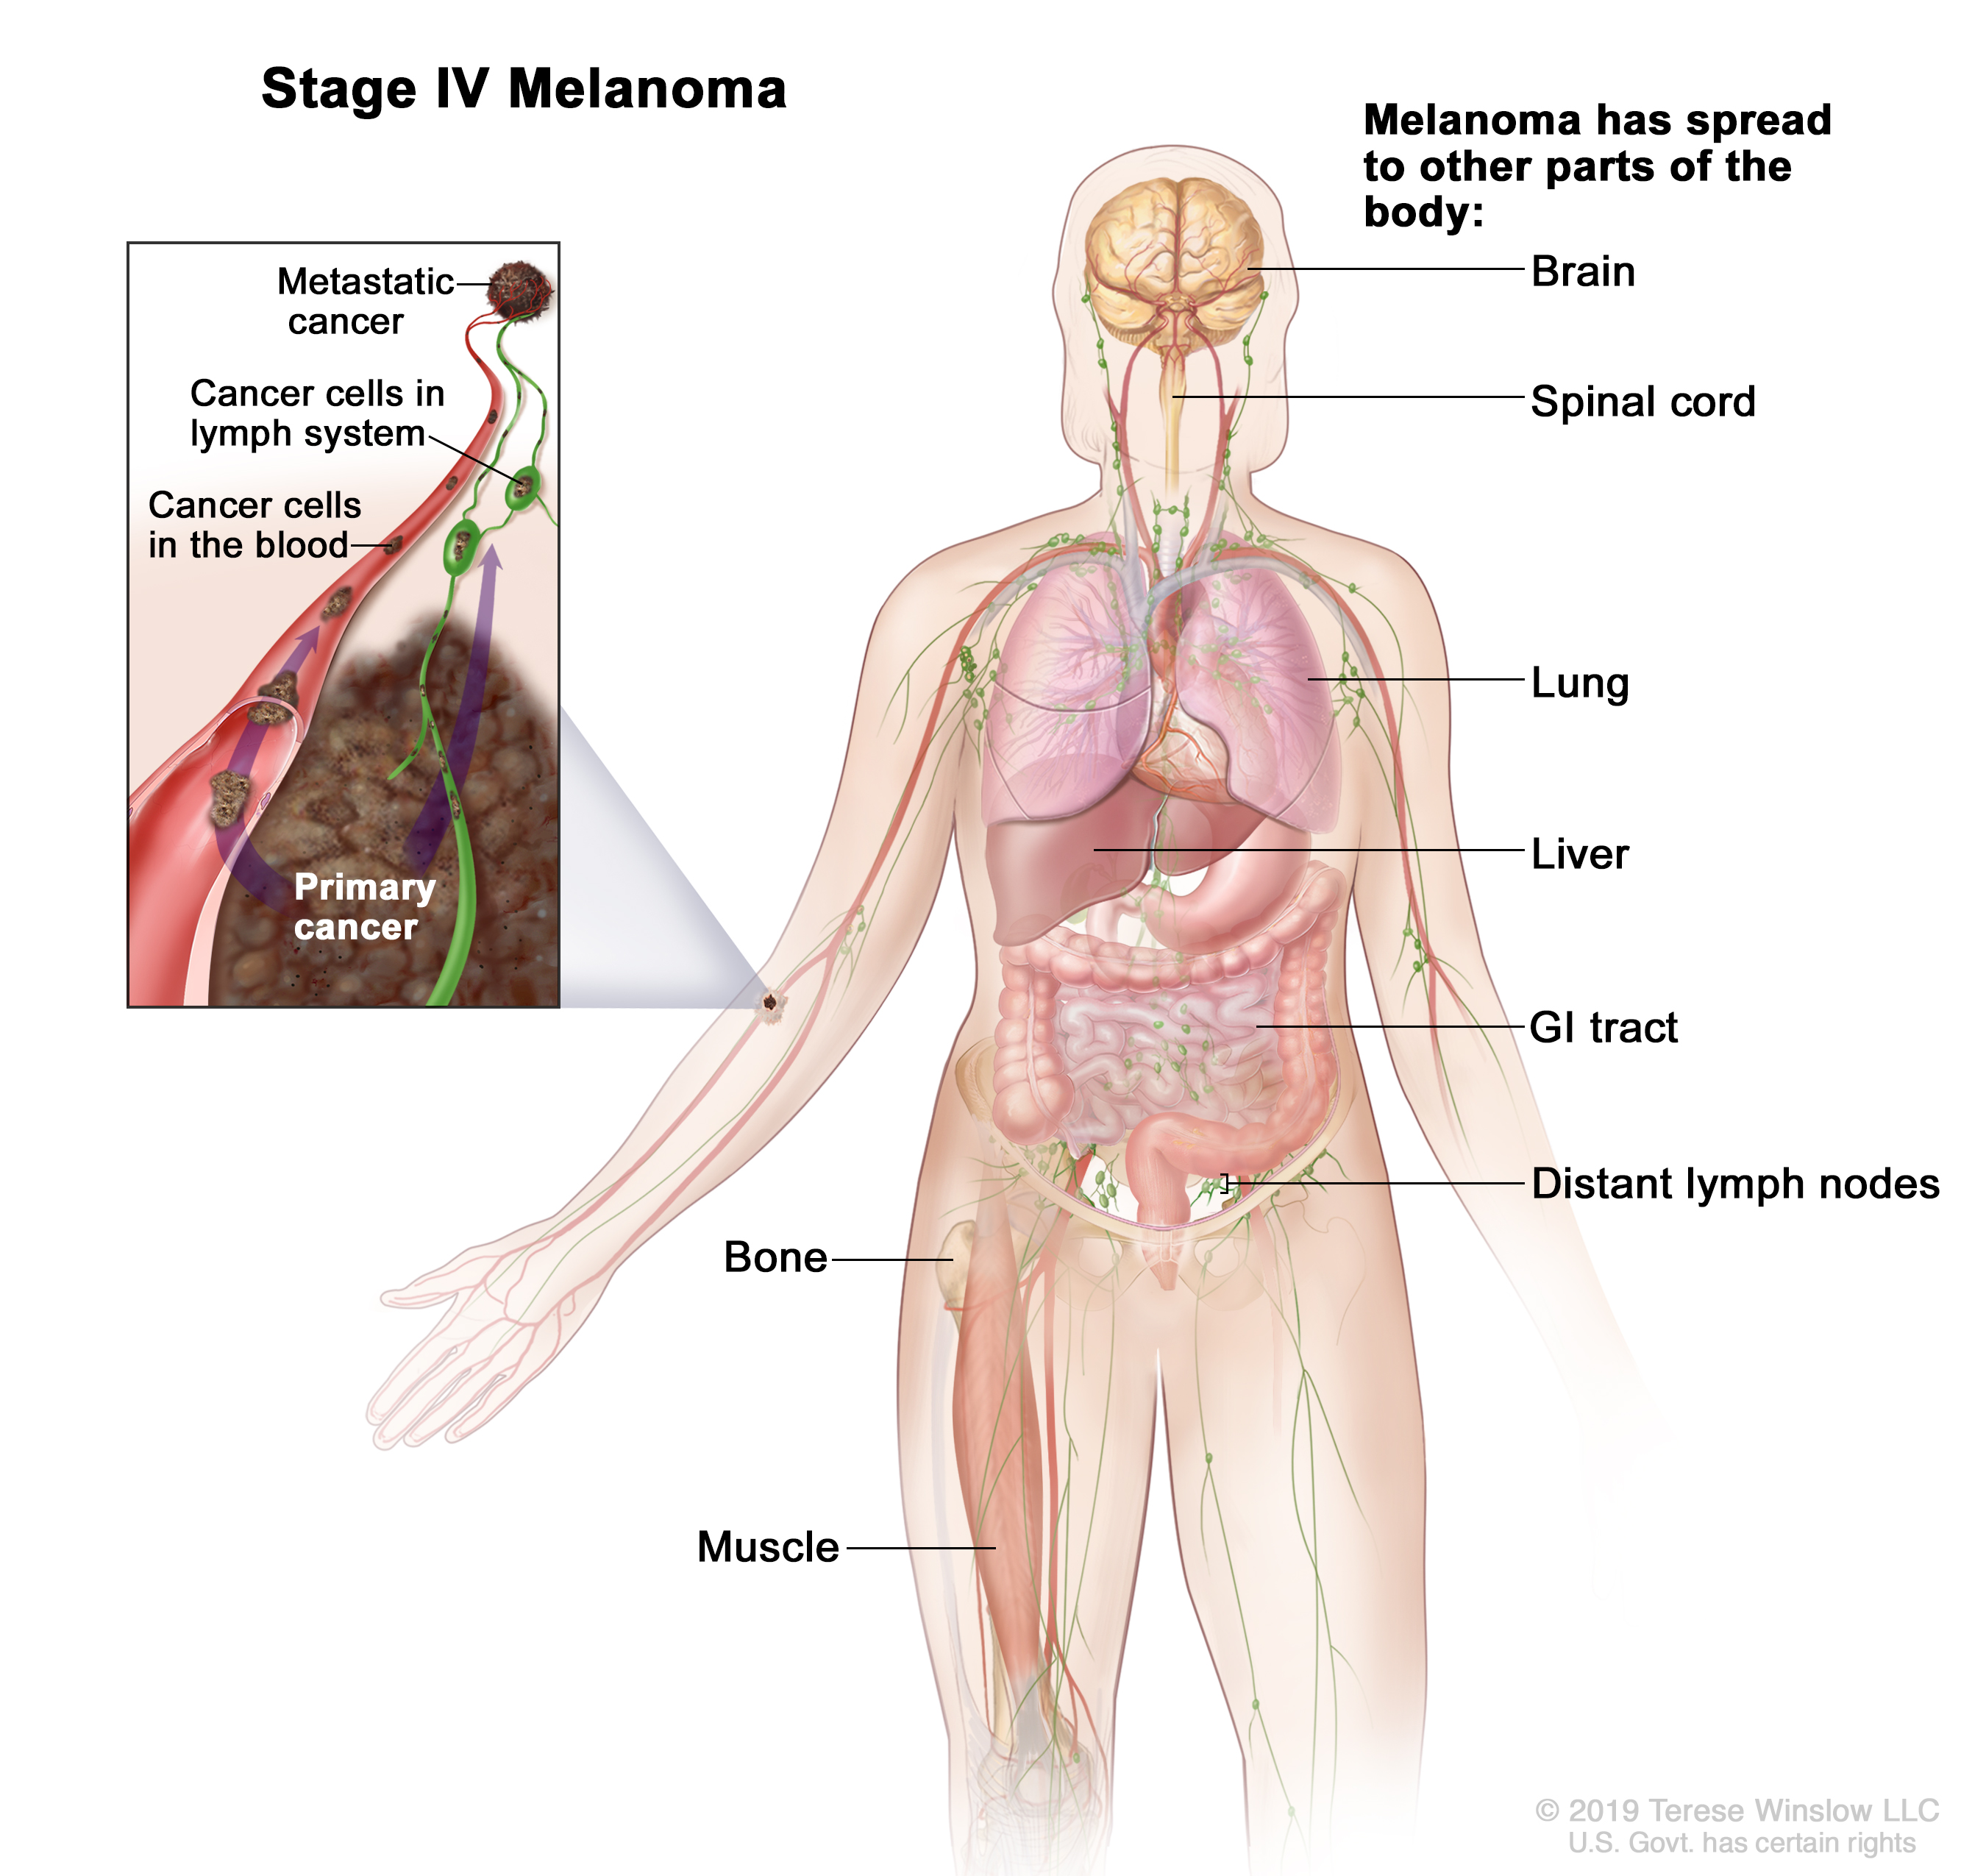 Stage IV melanoma; drawing shows other parts of the body where melanoma may spread, including the brain, spinal cord, lung, liver, gastrointestinal (GI) tract, bone, muscle, and distant lymph nodes. An inset shows cancer cells spreading through the blood and lymph system to another part of the body where a metastatic tumor has formed.